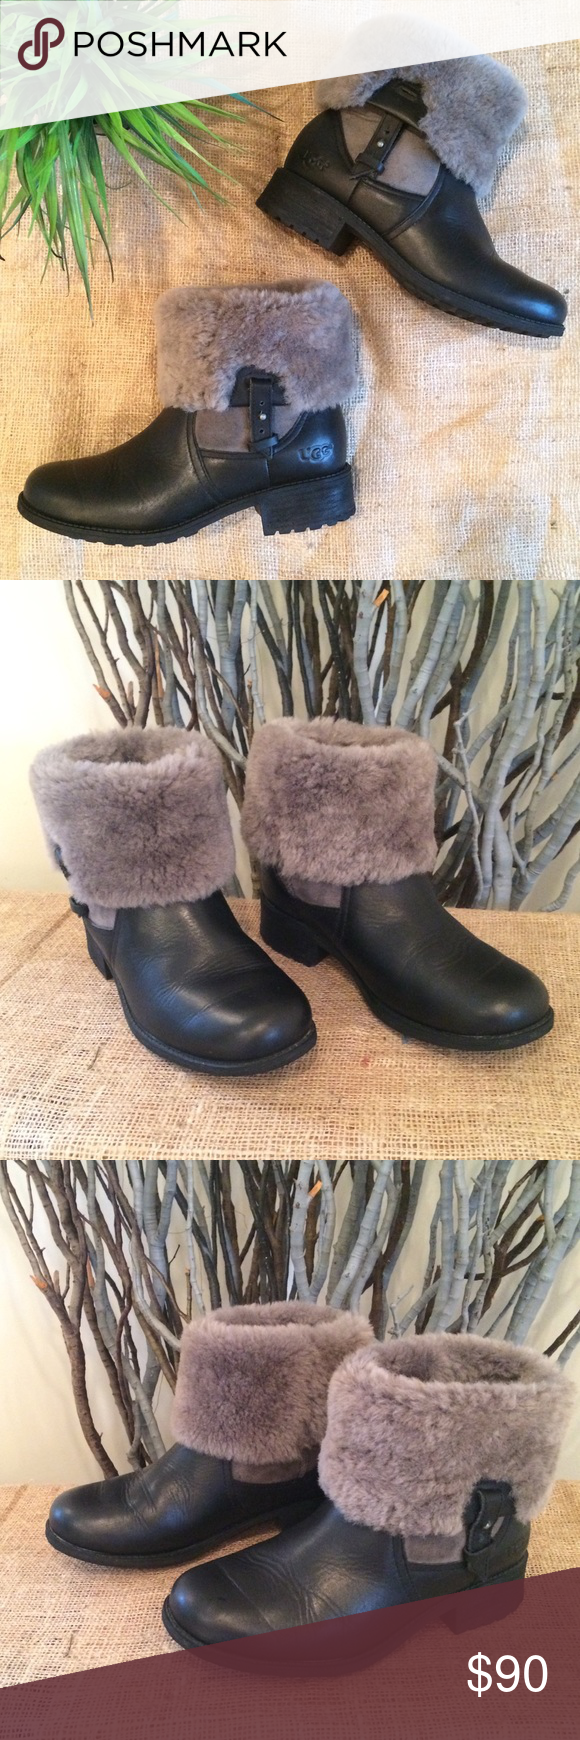 a0a4fea0714 UGG Chyler Fold Down Boot Pre-owned UGG Chyler Black Leather Fold ...